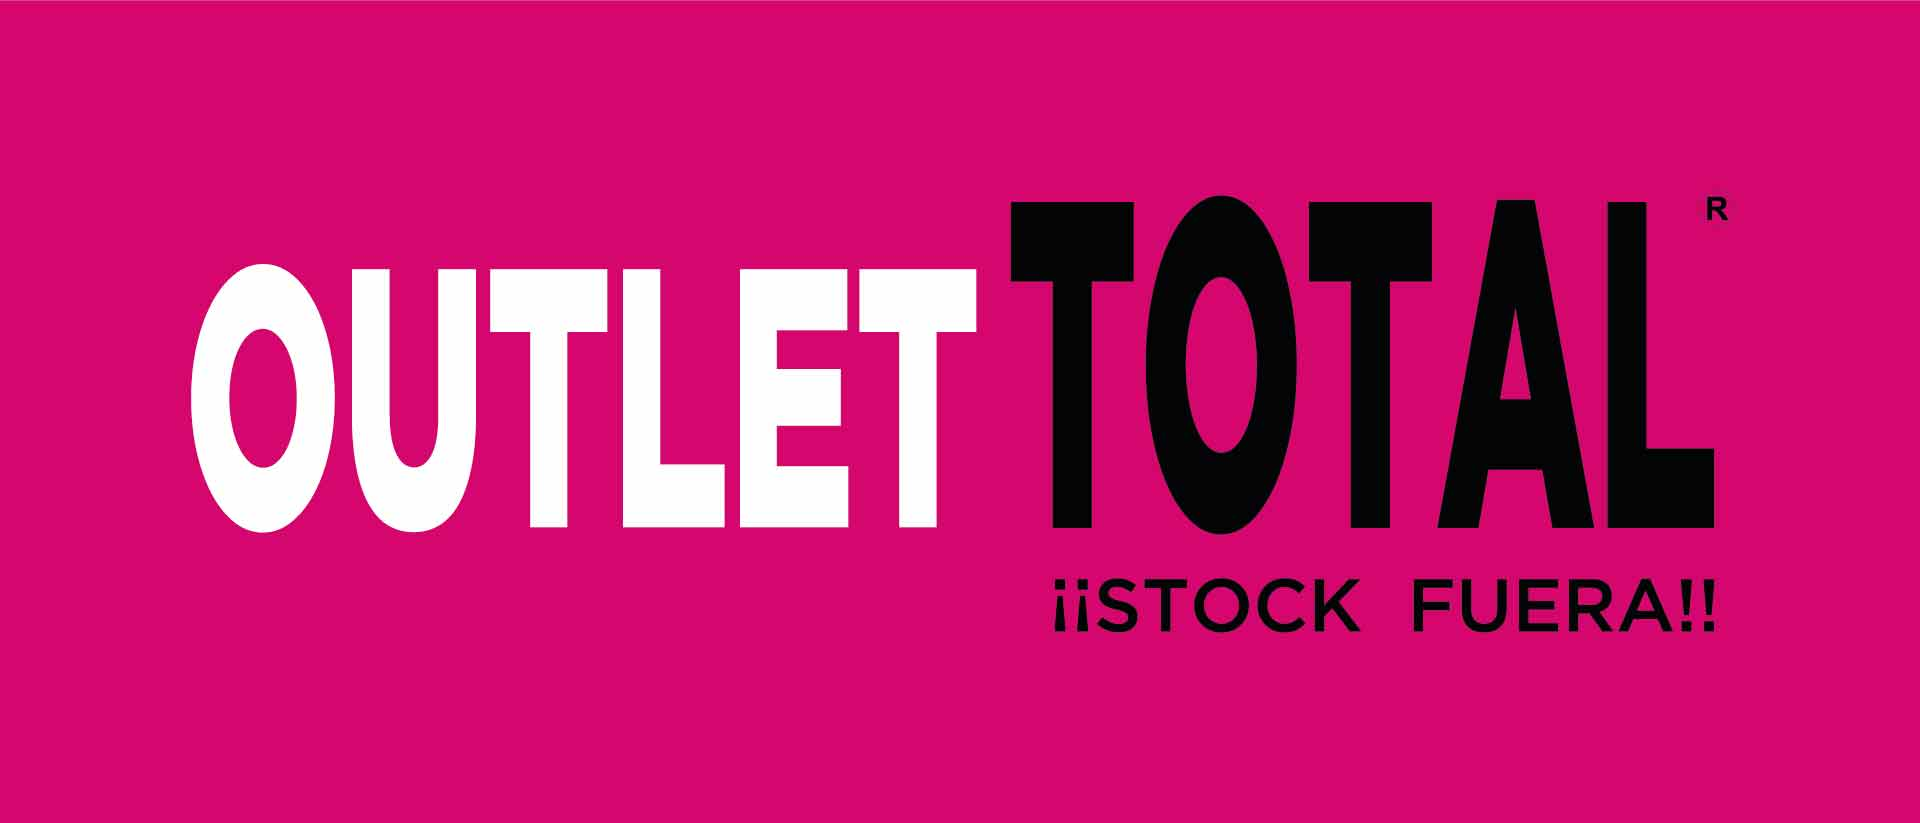 outlet total